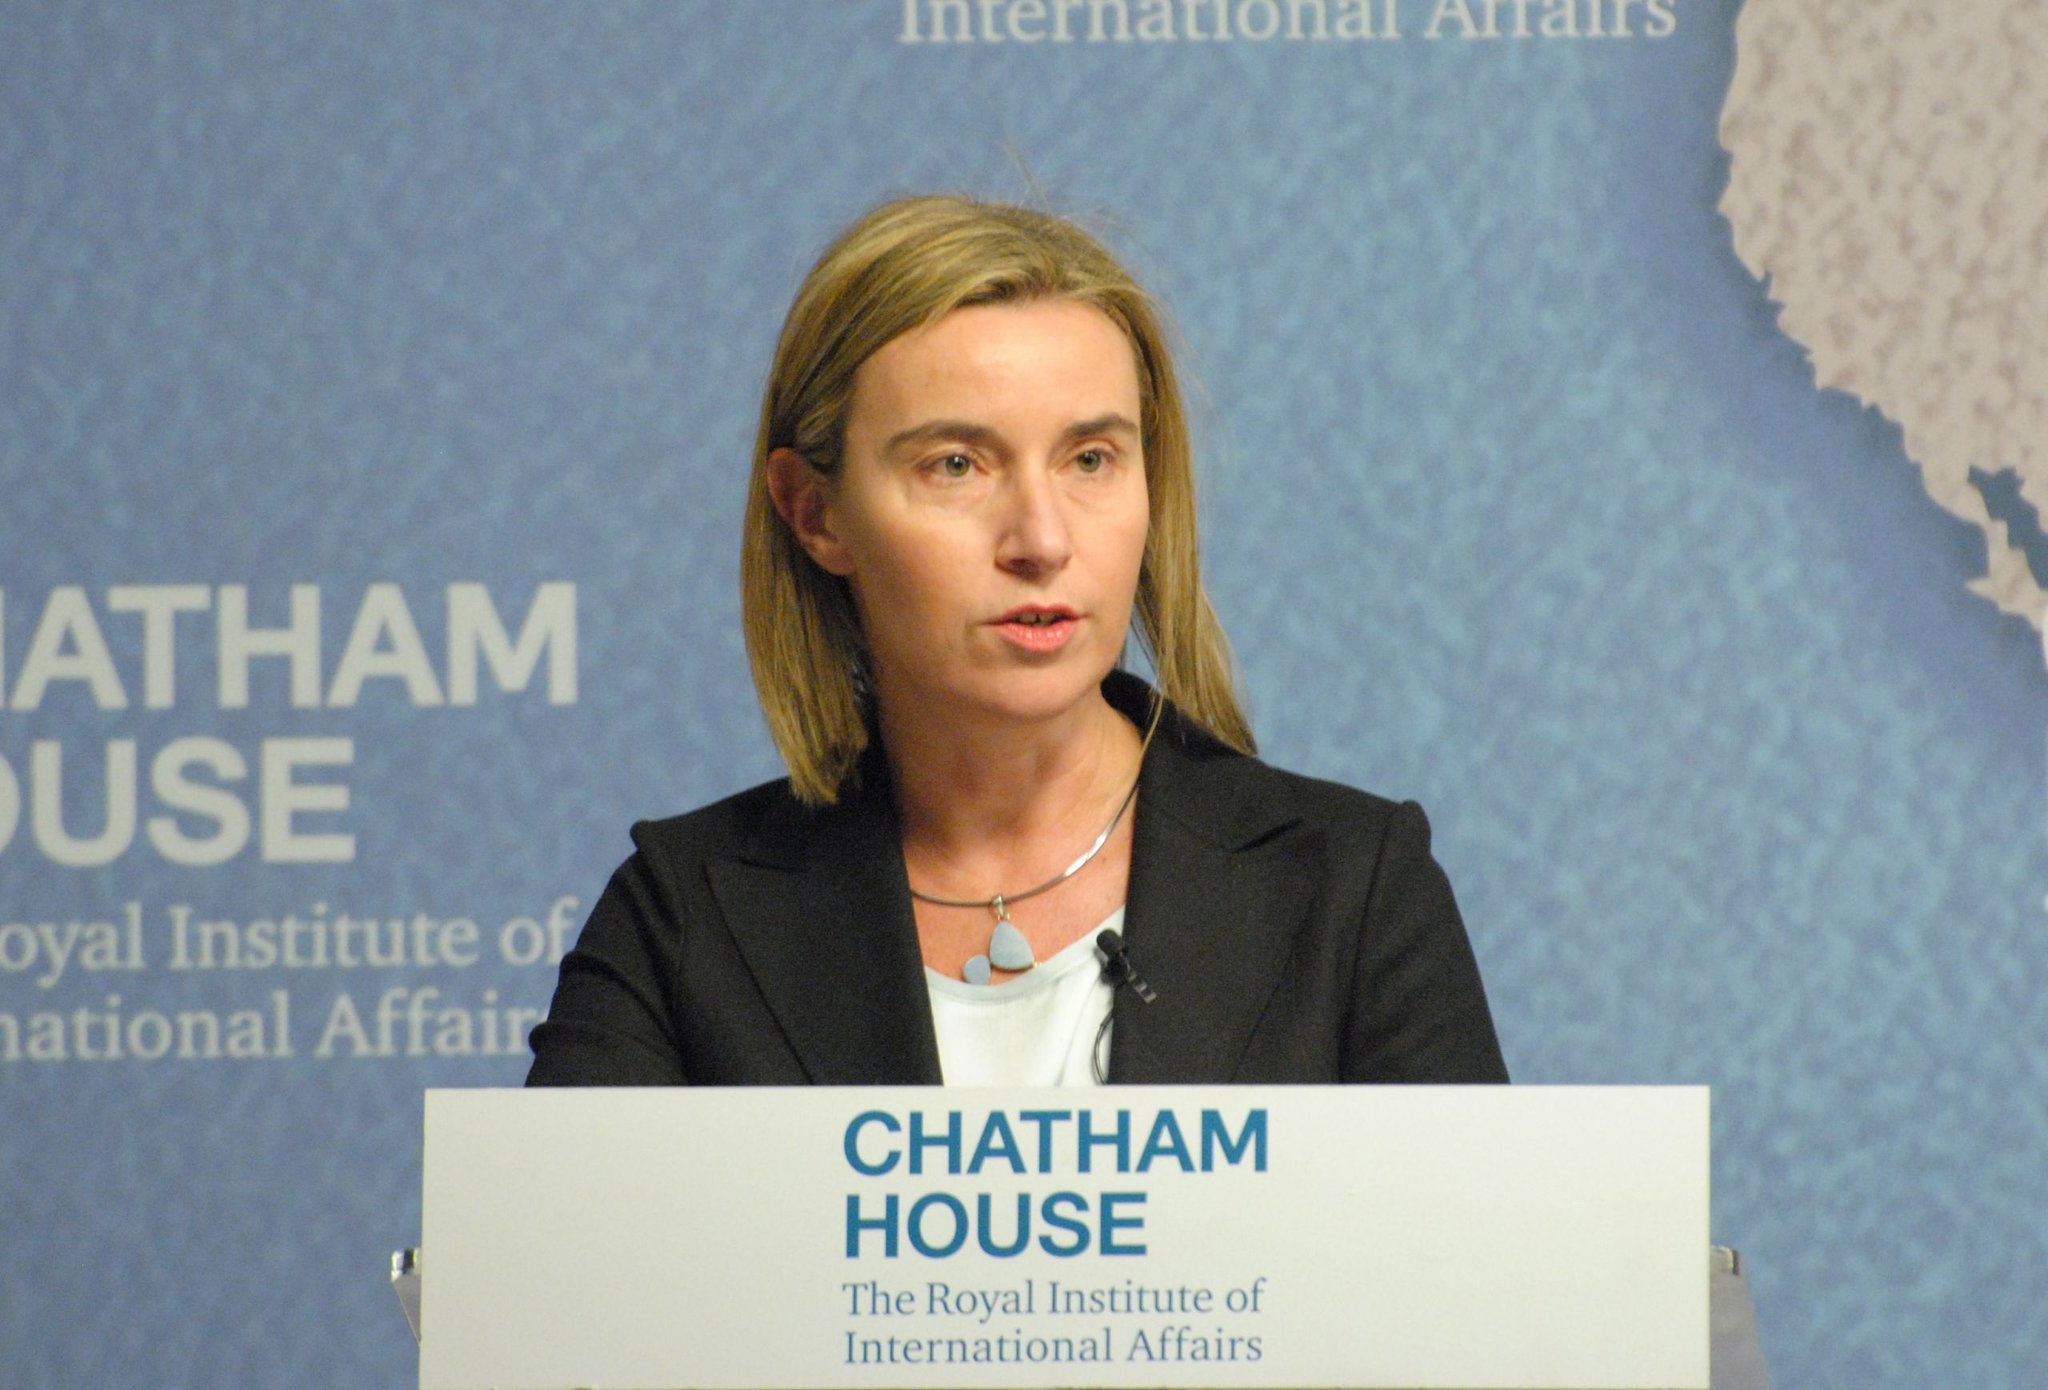 Федерика Могерини, автор: Chatham House, London [chathamhouse], лицензия: CC BY 2.0